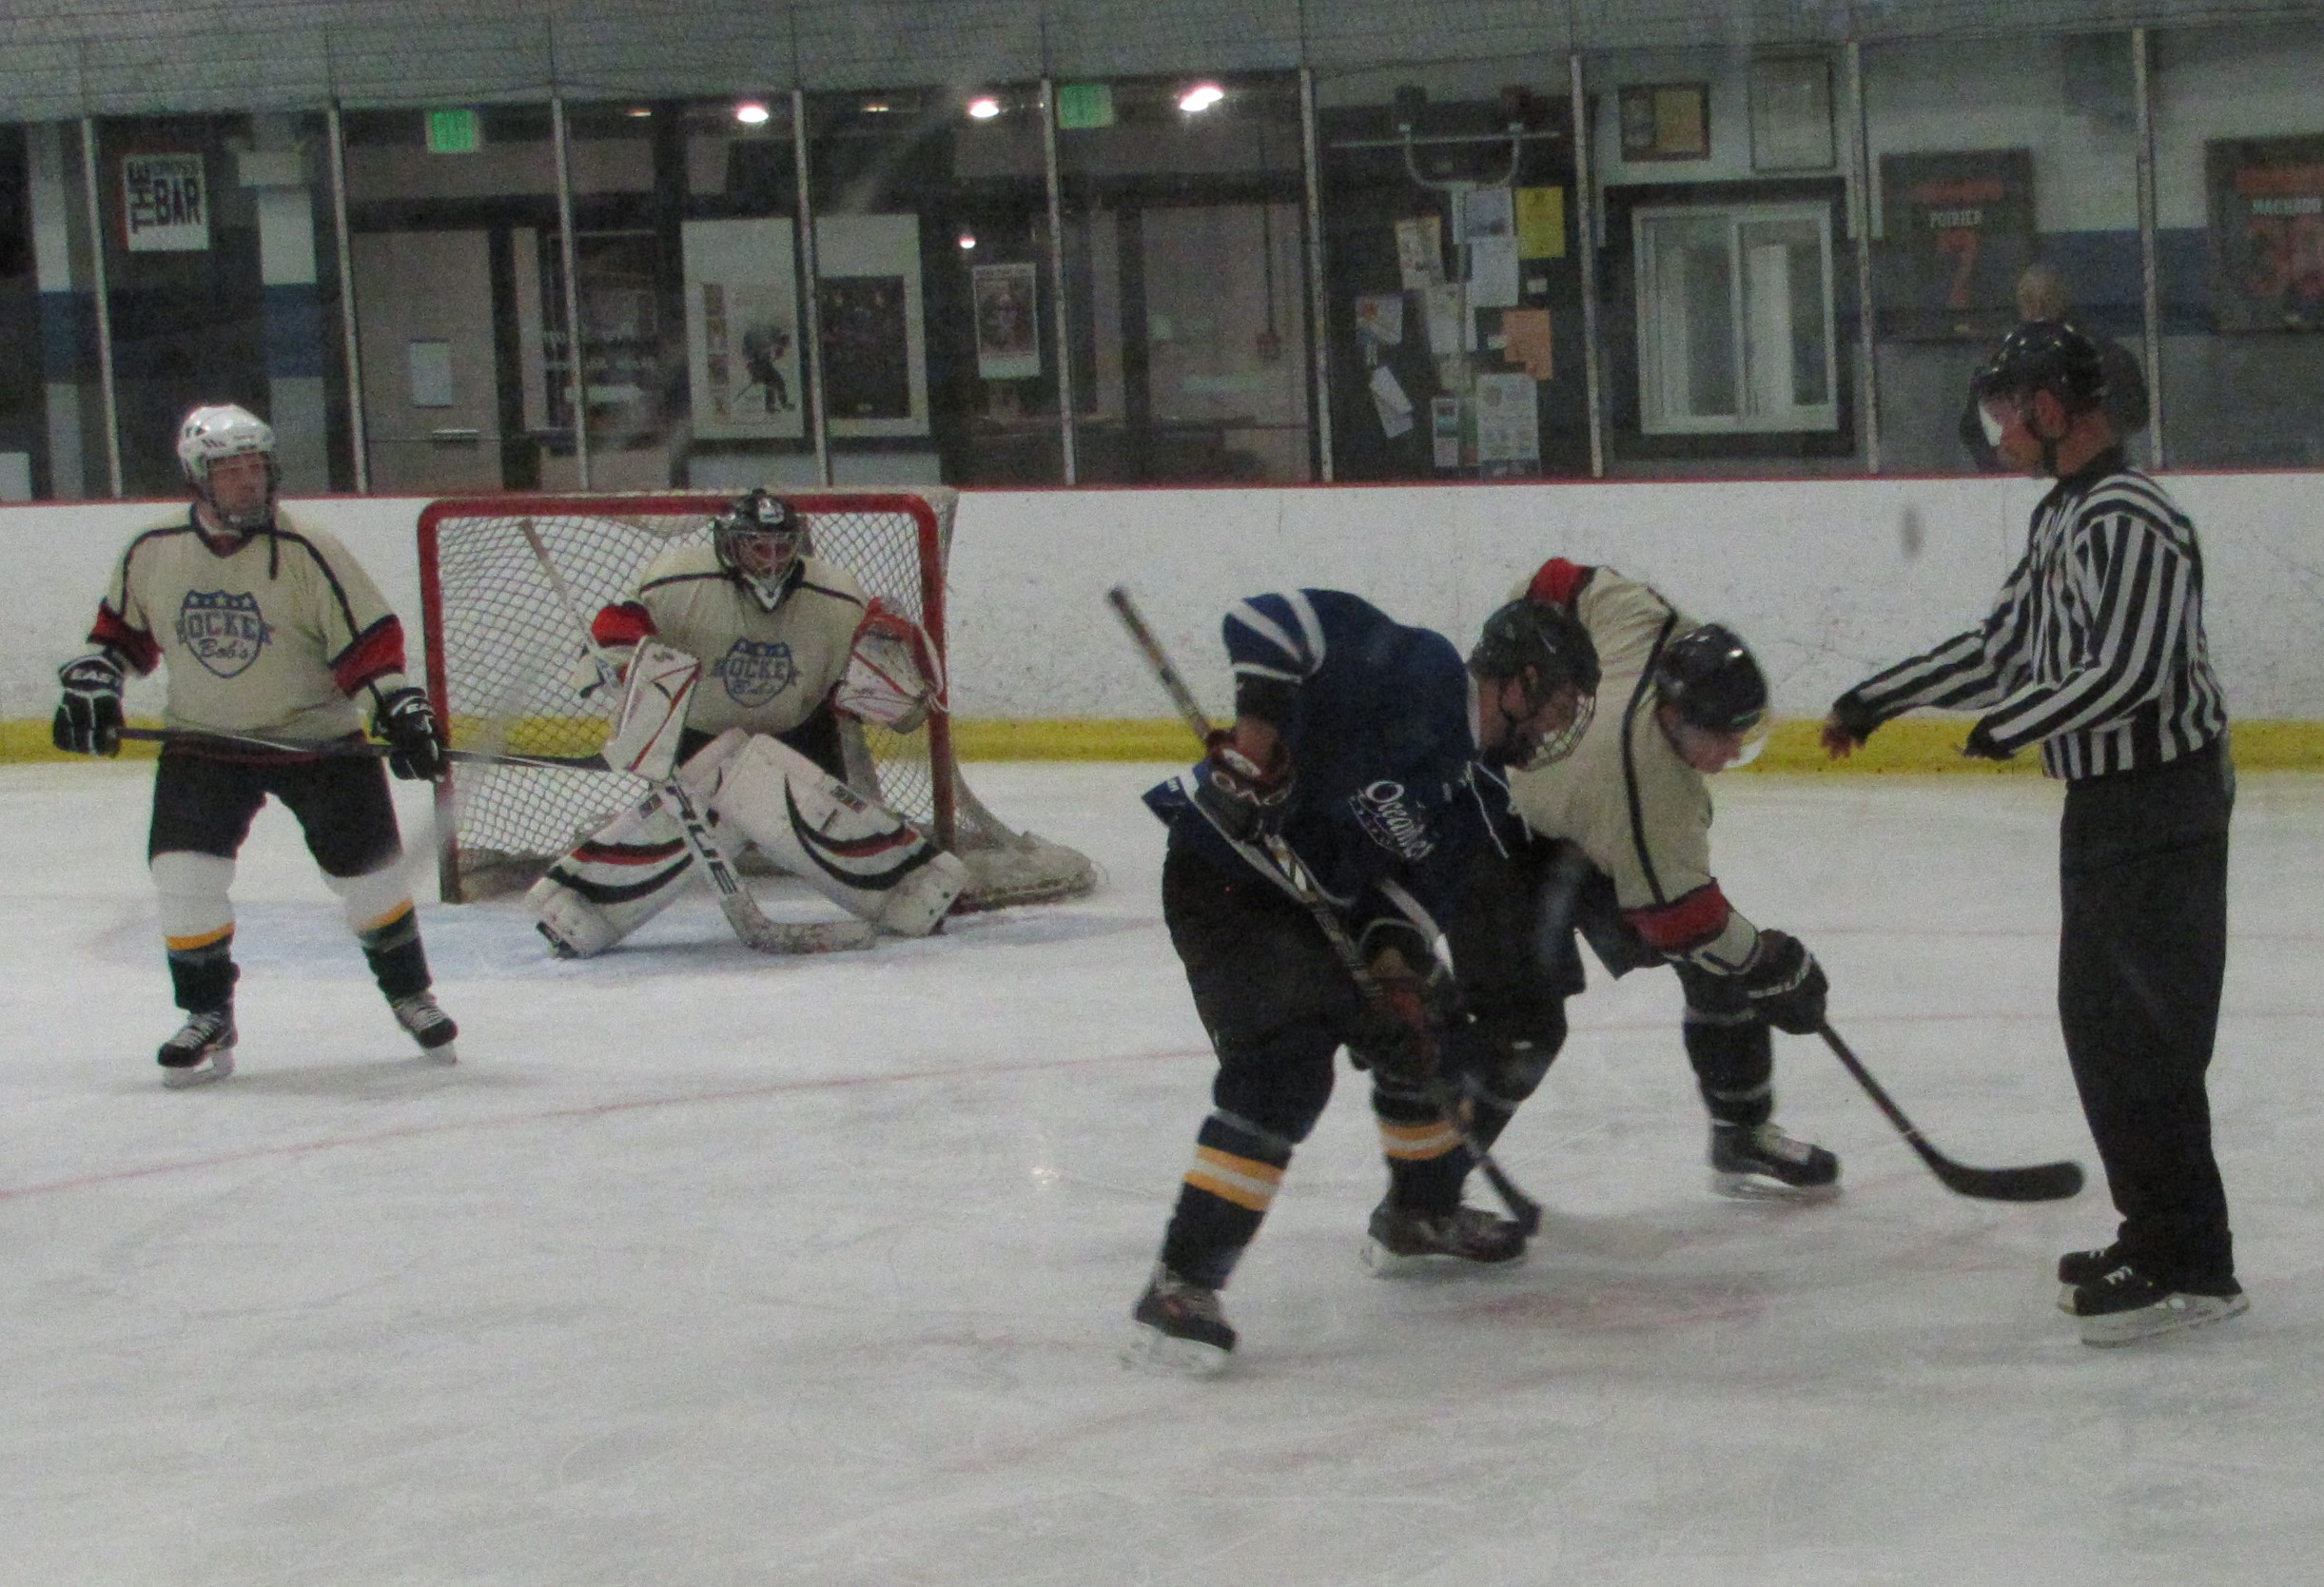 TAYLOR MORRISON/JOURNAL TRIBUNE: Hockey Bobs and Albert's Garage face off in Bob's zone Wednesday night. Hockey Bobs came back from a late start to win, 9-3.